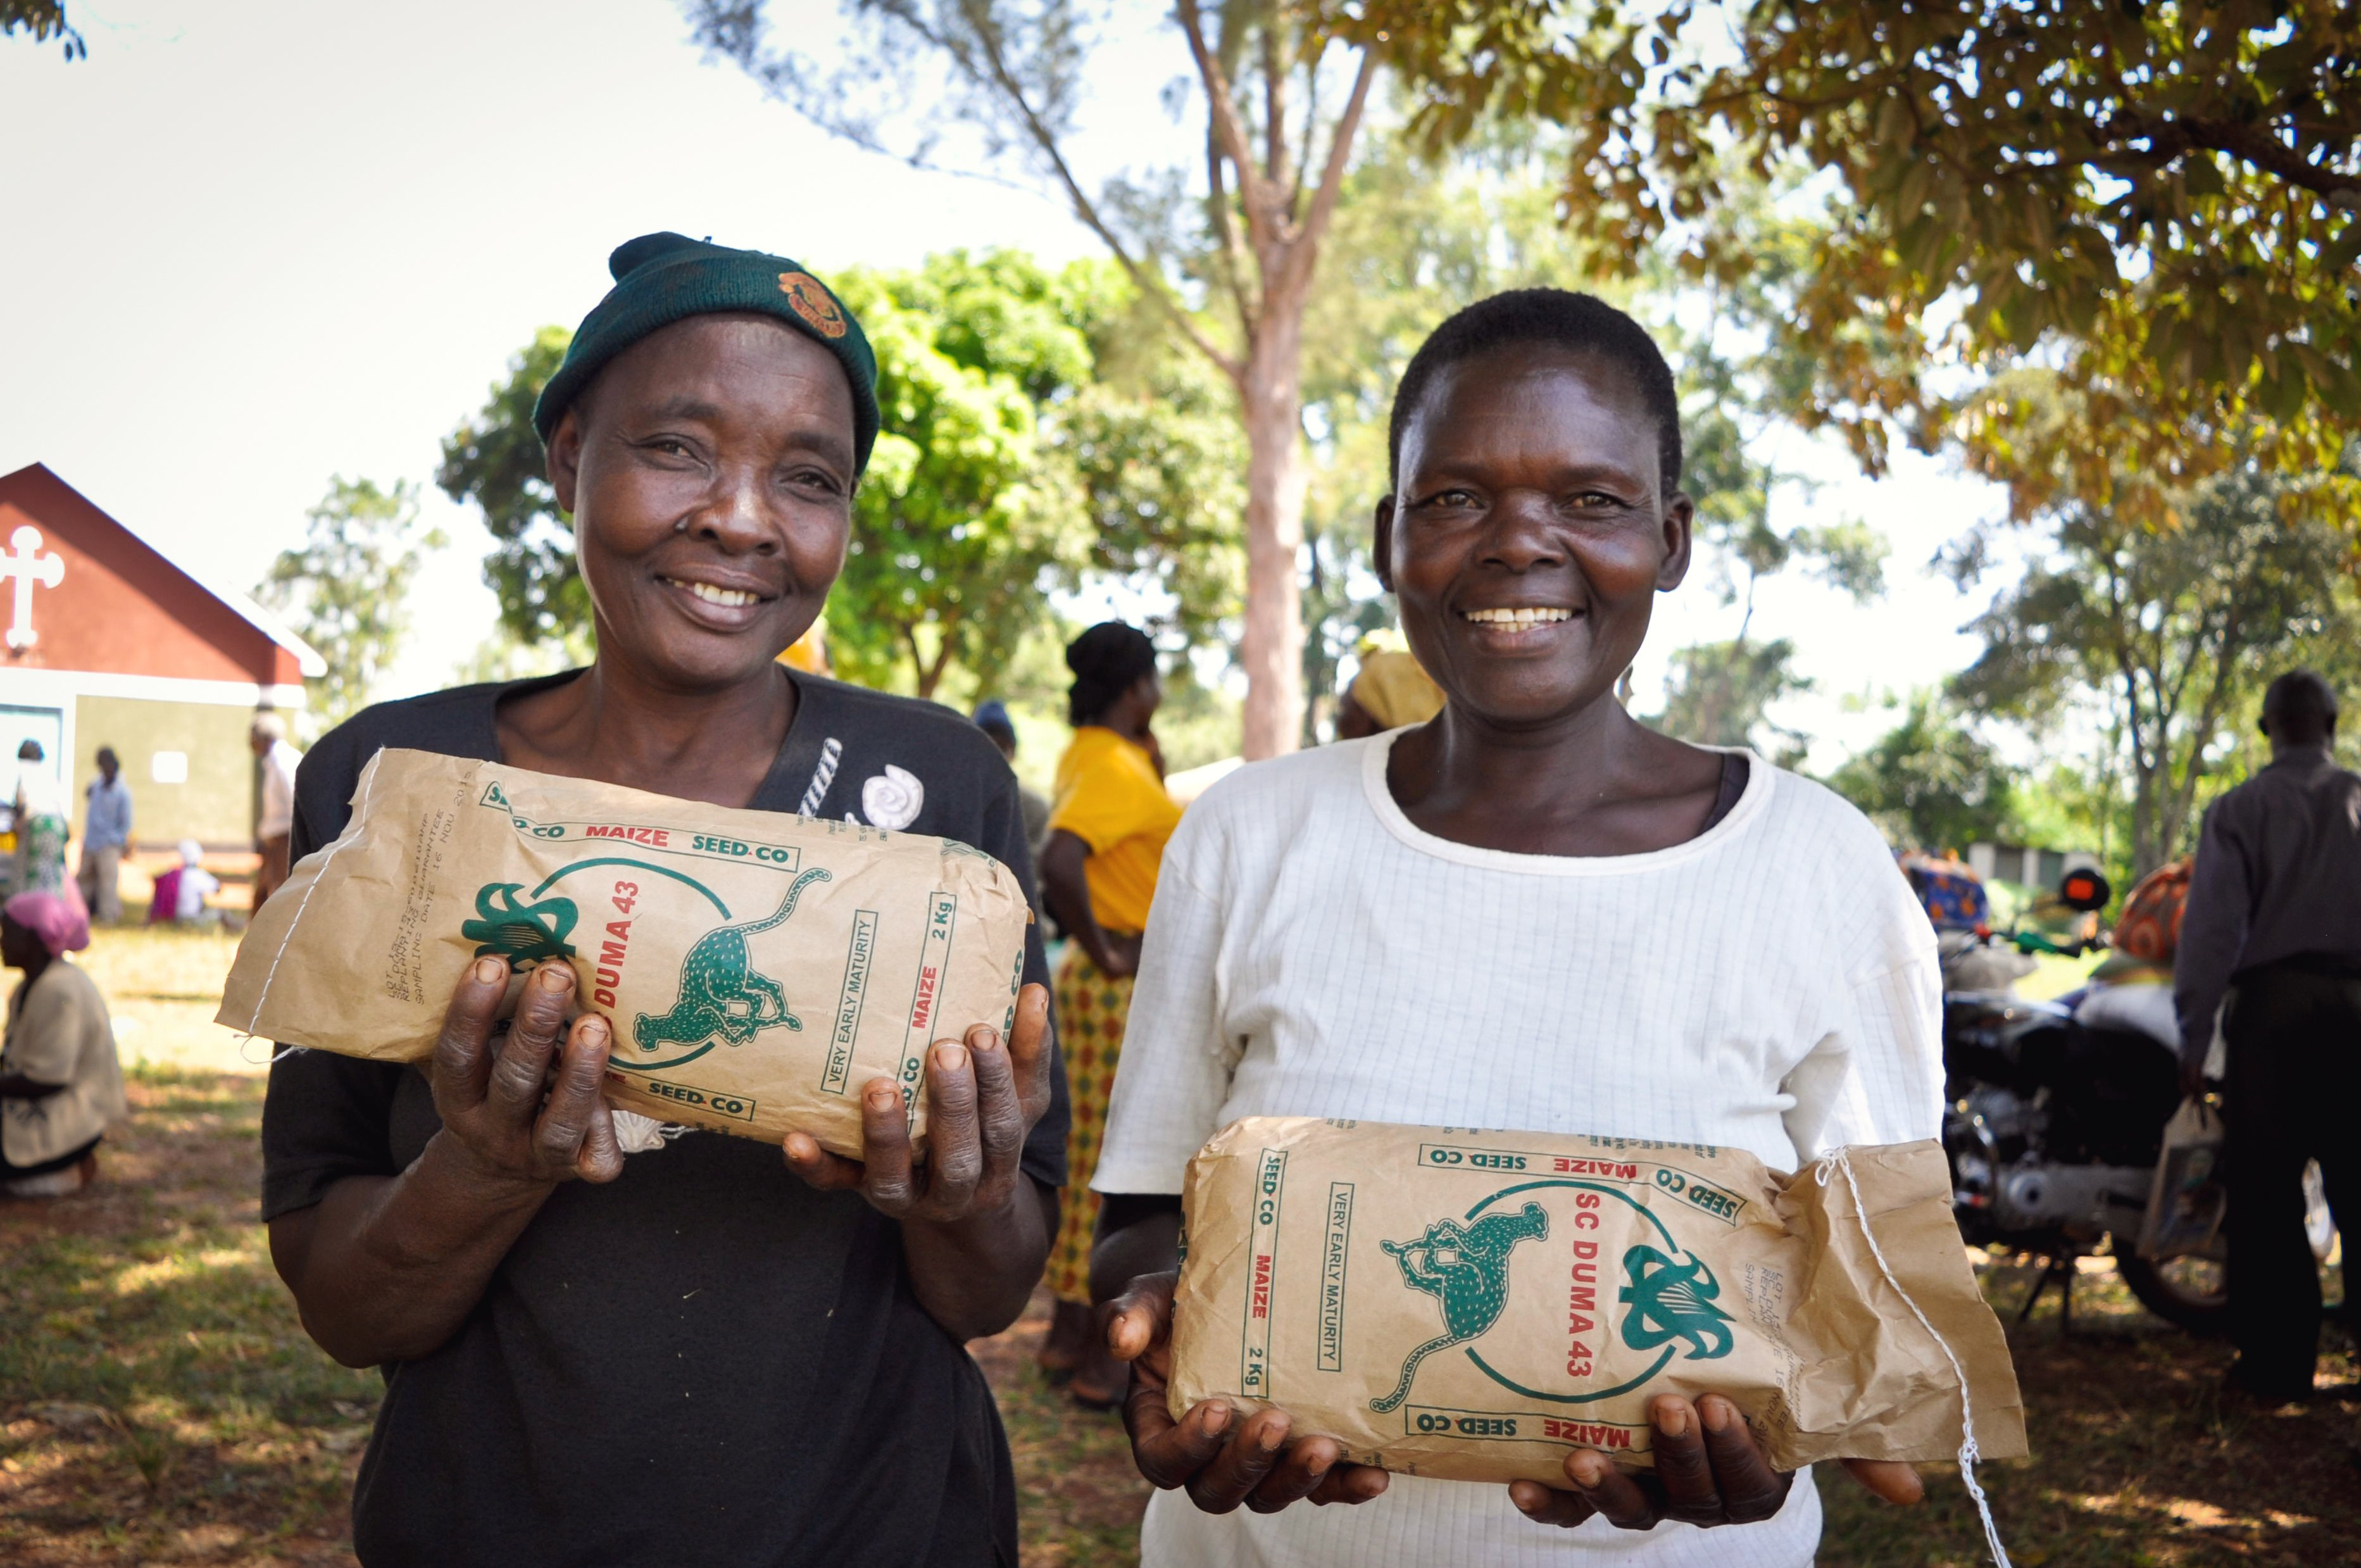 Two farmers holding maize seed